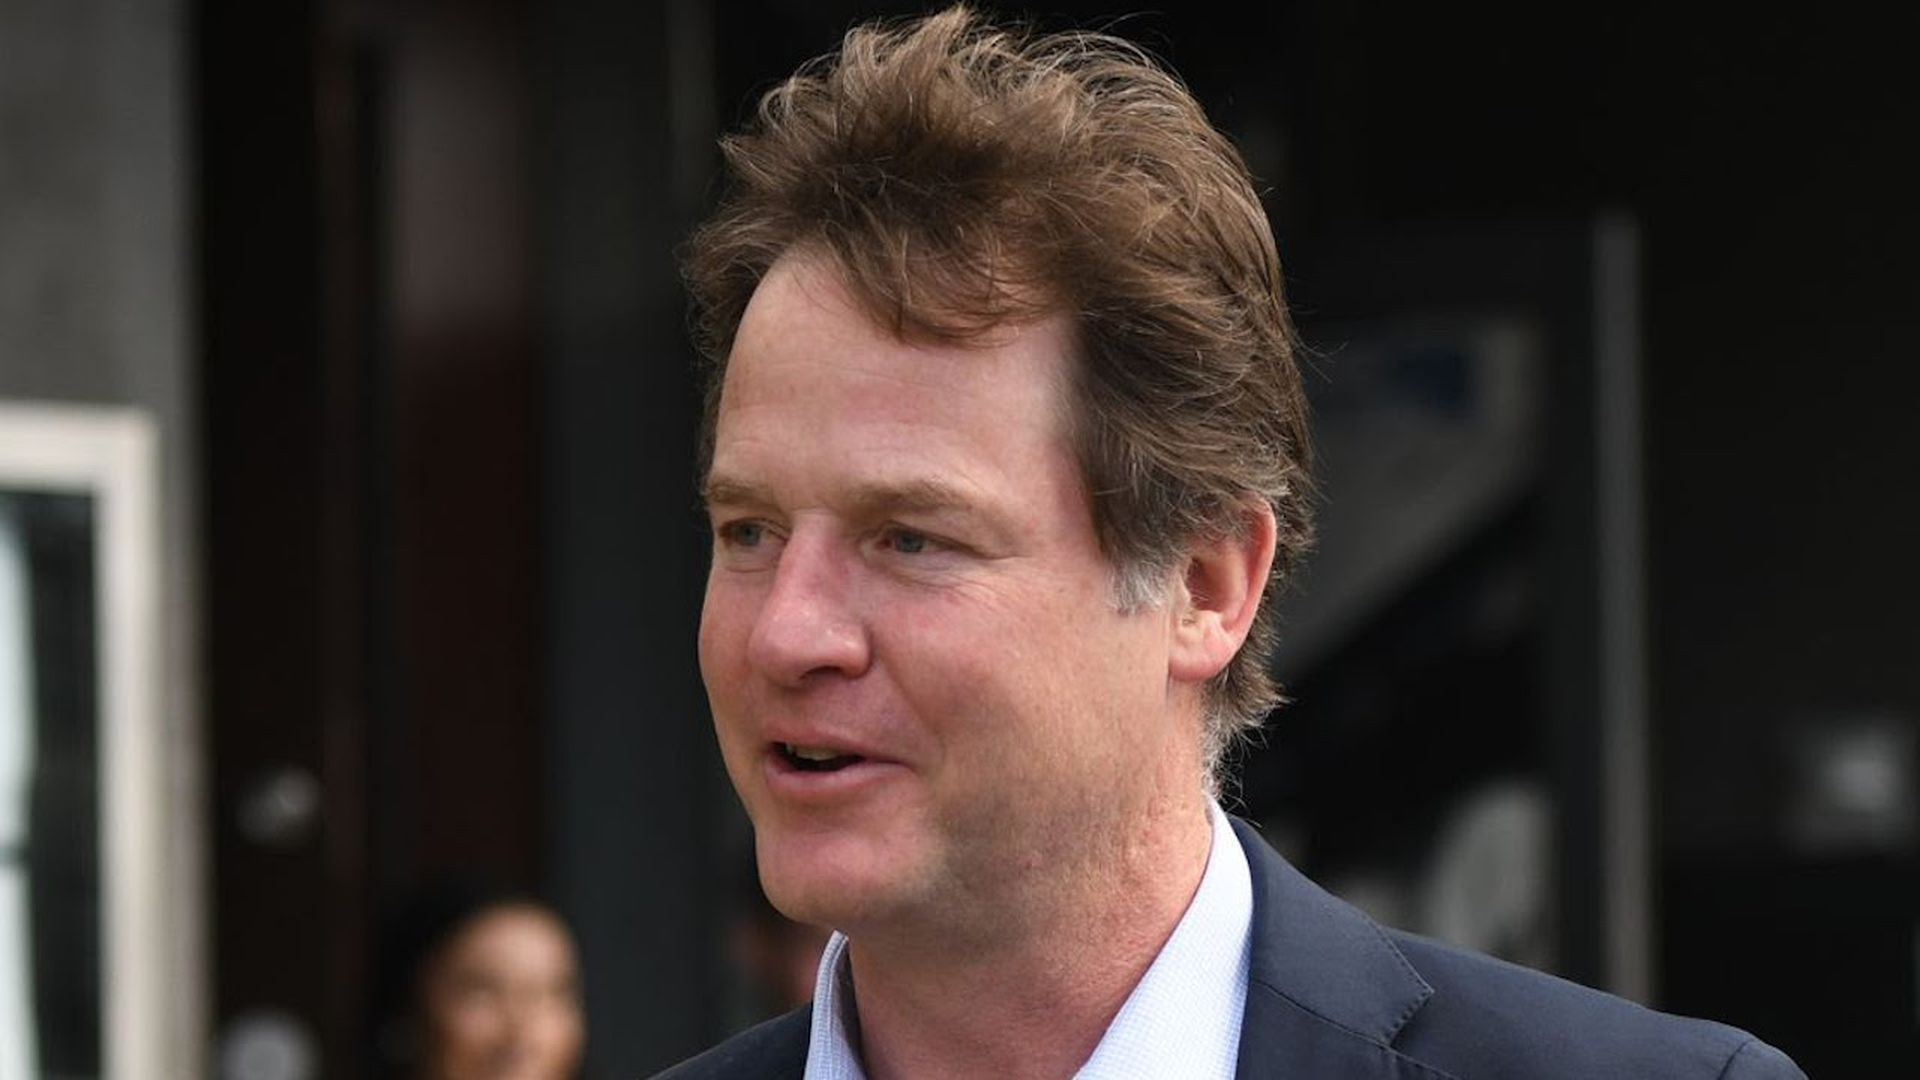 Nick Clegg in Dublin in April